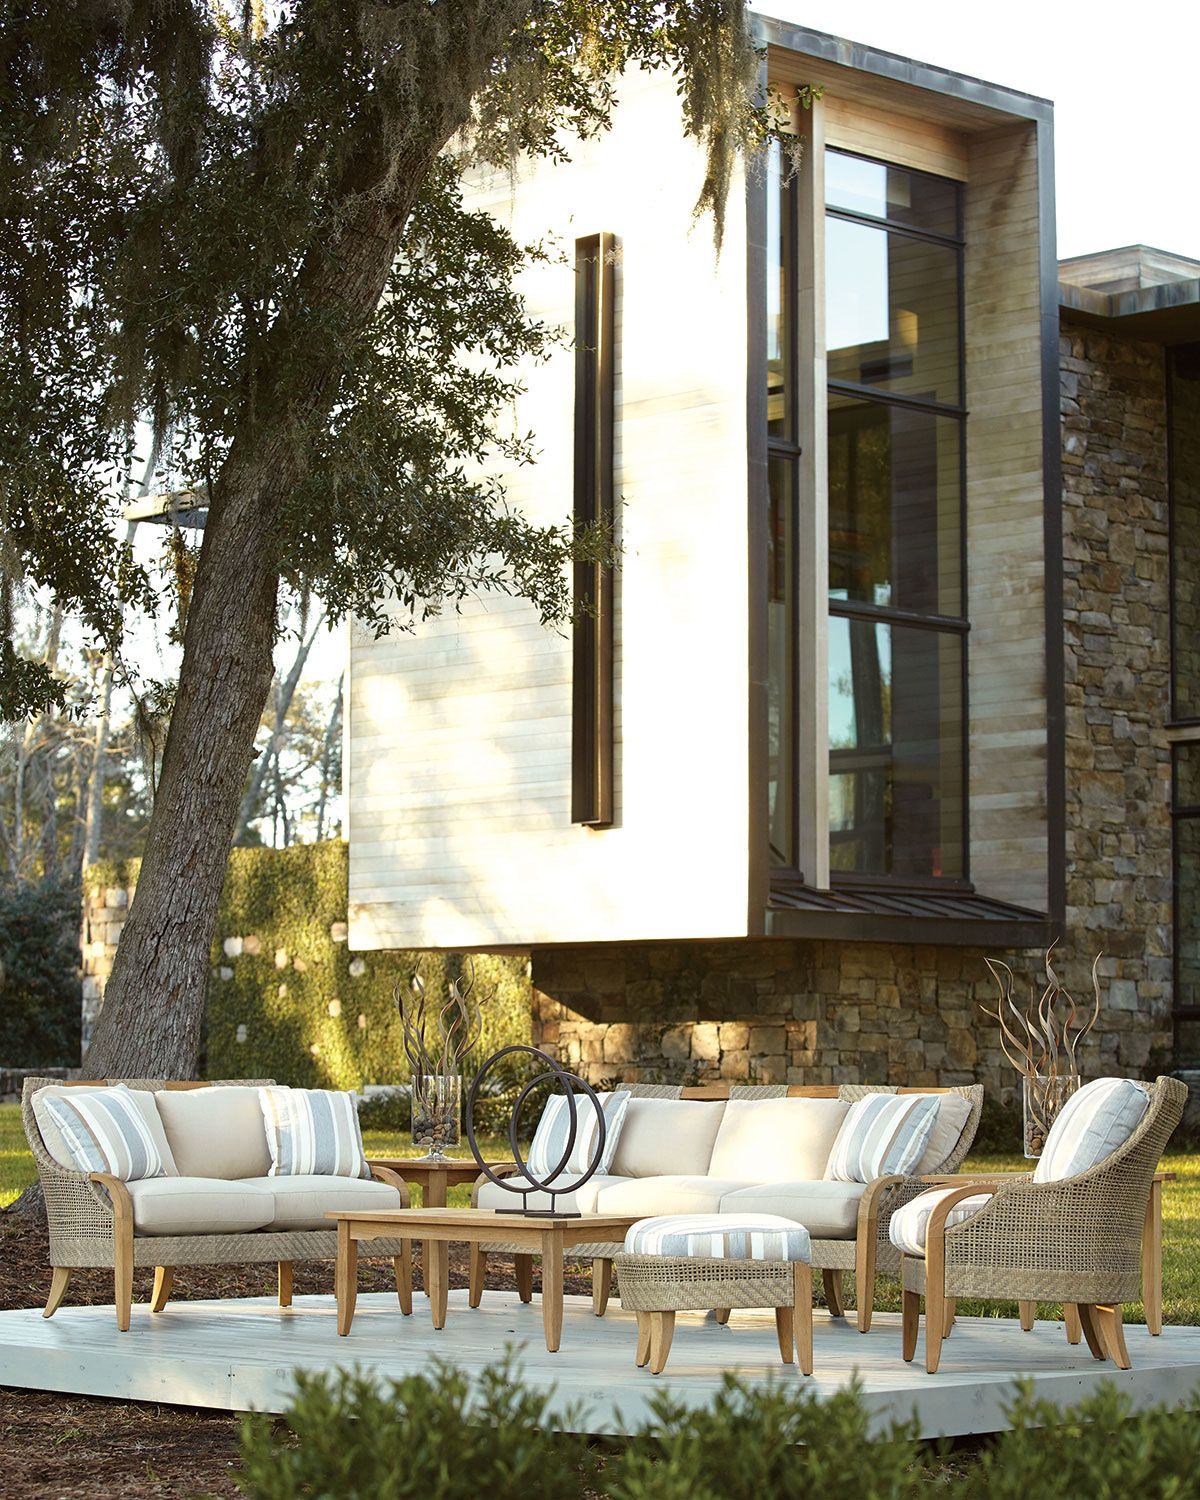 Edgewood Outdoor Lounge Chair | Pinterest | Muebles clásicos ...